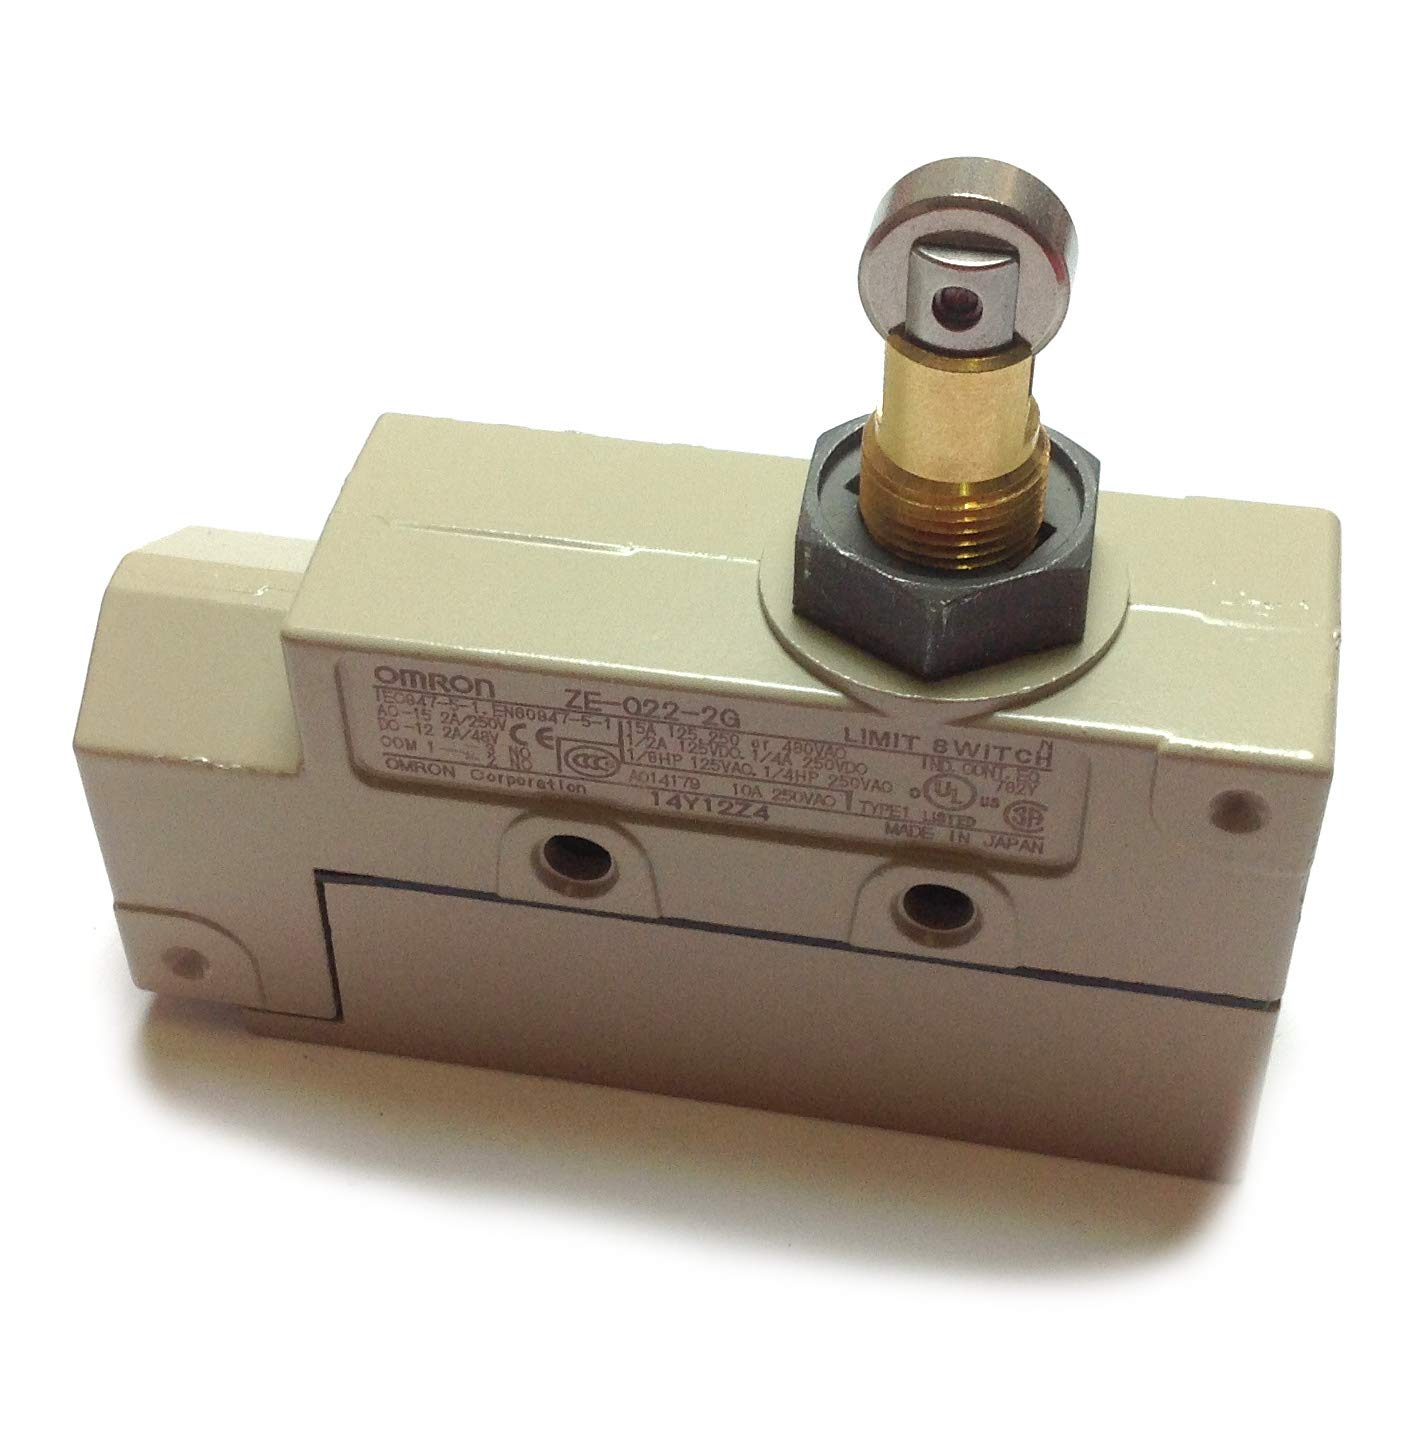 Omron ZEQ222G Enclosed Limit Switch, 125 VAC, 15 A, 2.45 - 3.43 N Operating by Omron